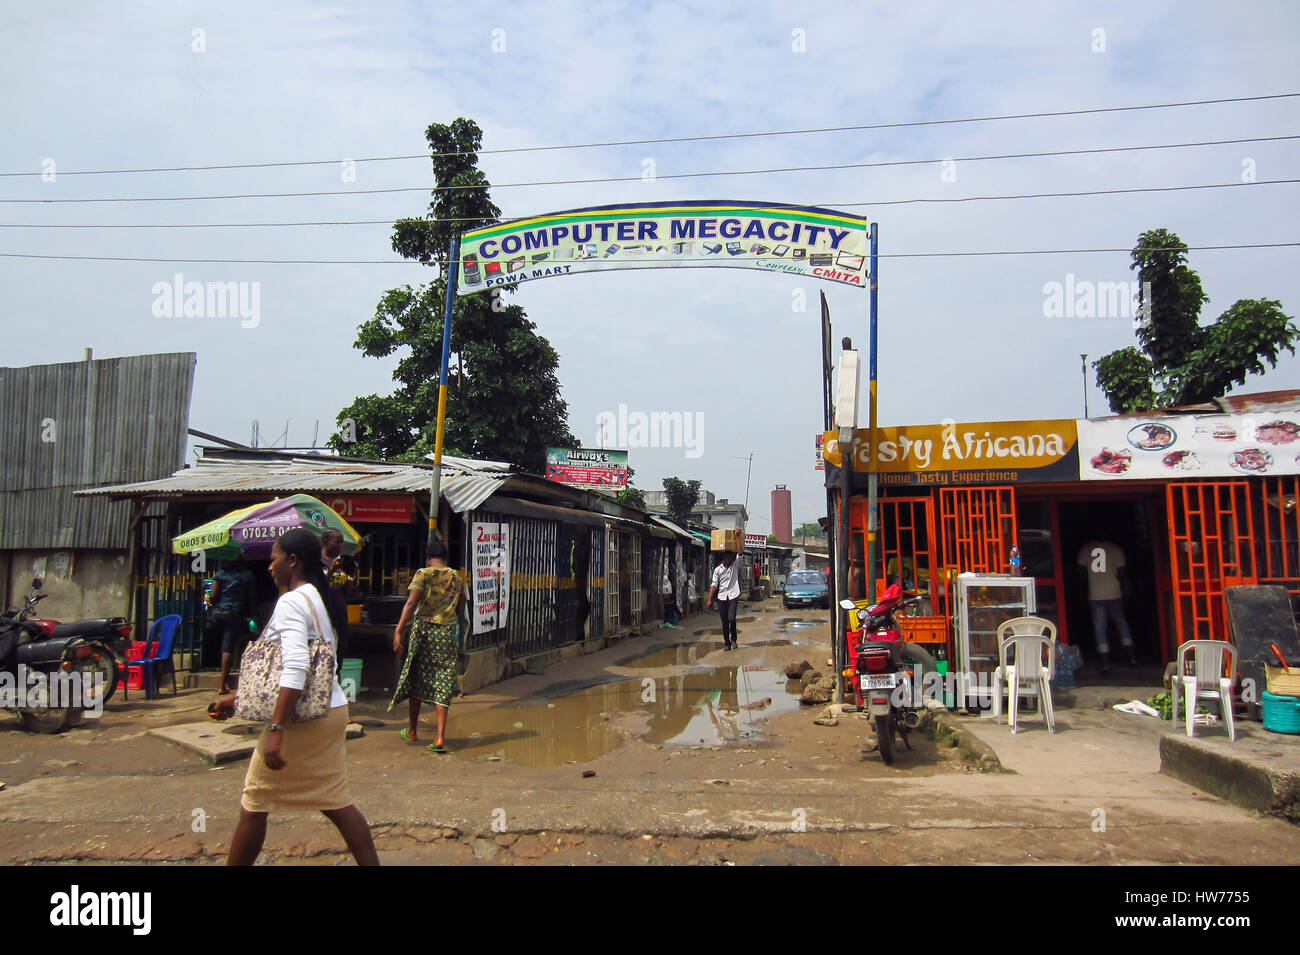 People walking in the street, in front of a commercial zone called Computer Megacity,  in the large city of Lagos, - Stock Image